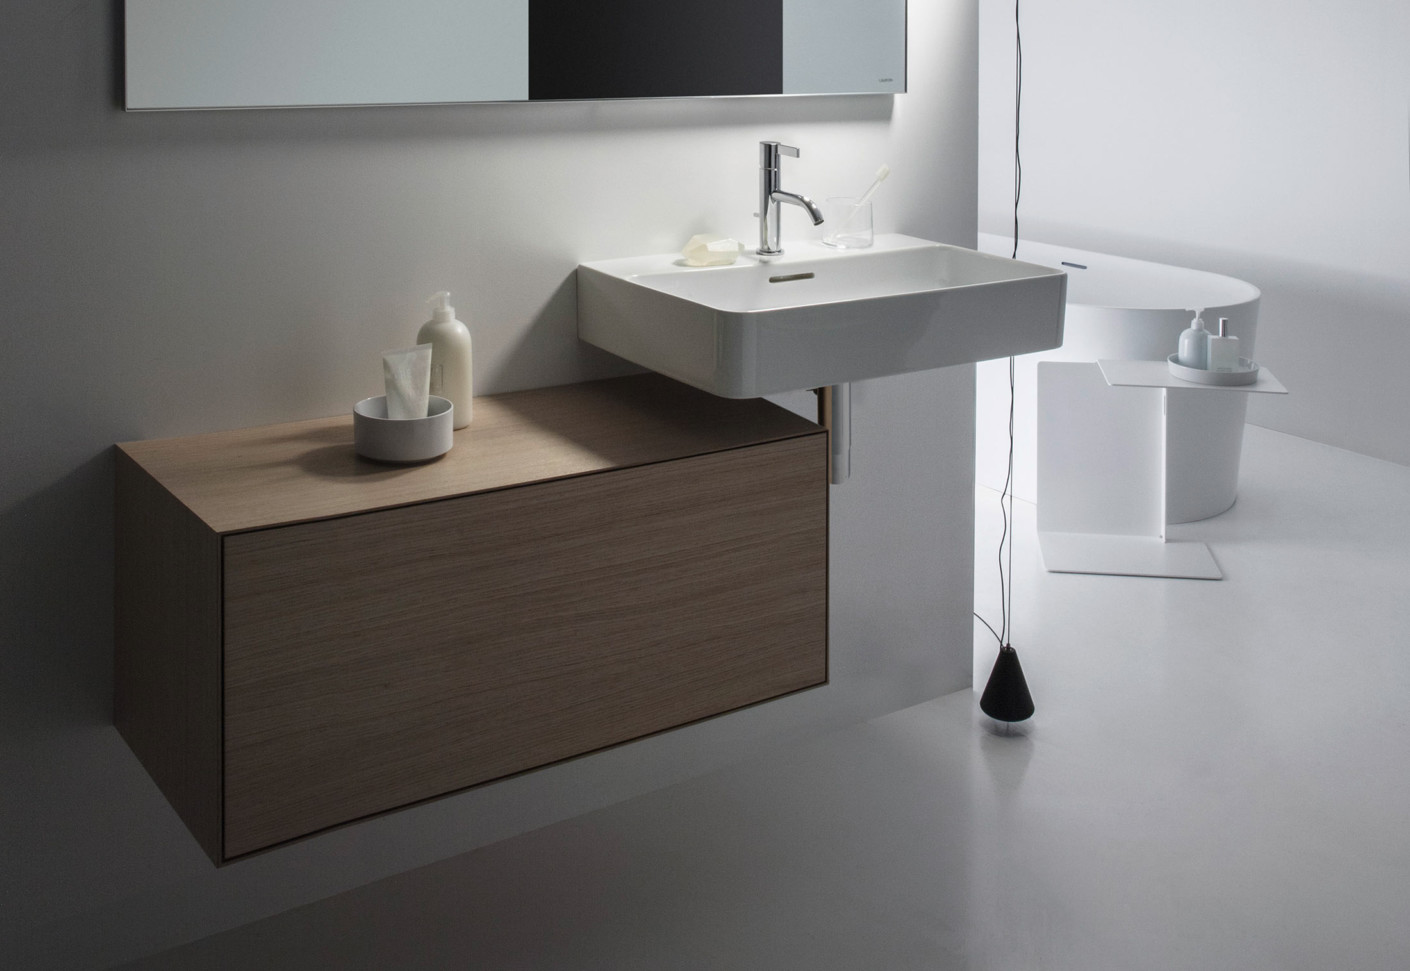 Boutique vanity unit by Laufen  STYLEPARK # Wasbak Lamp_182834